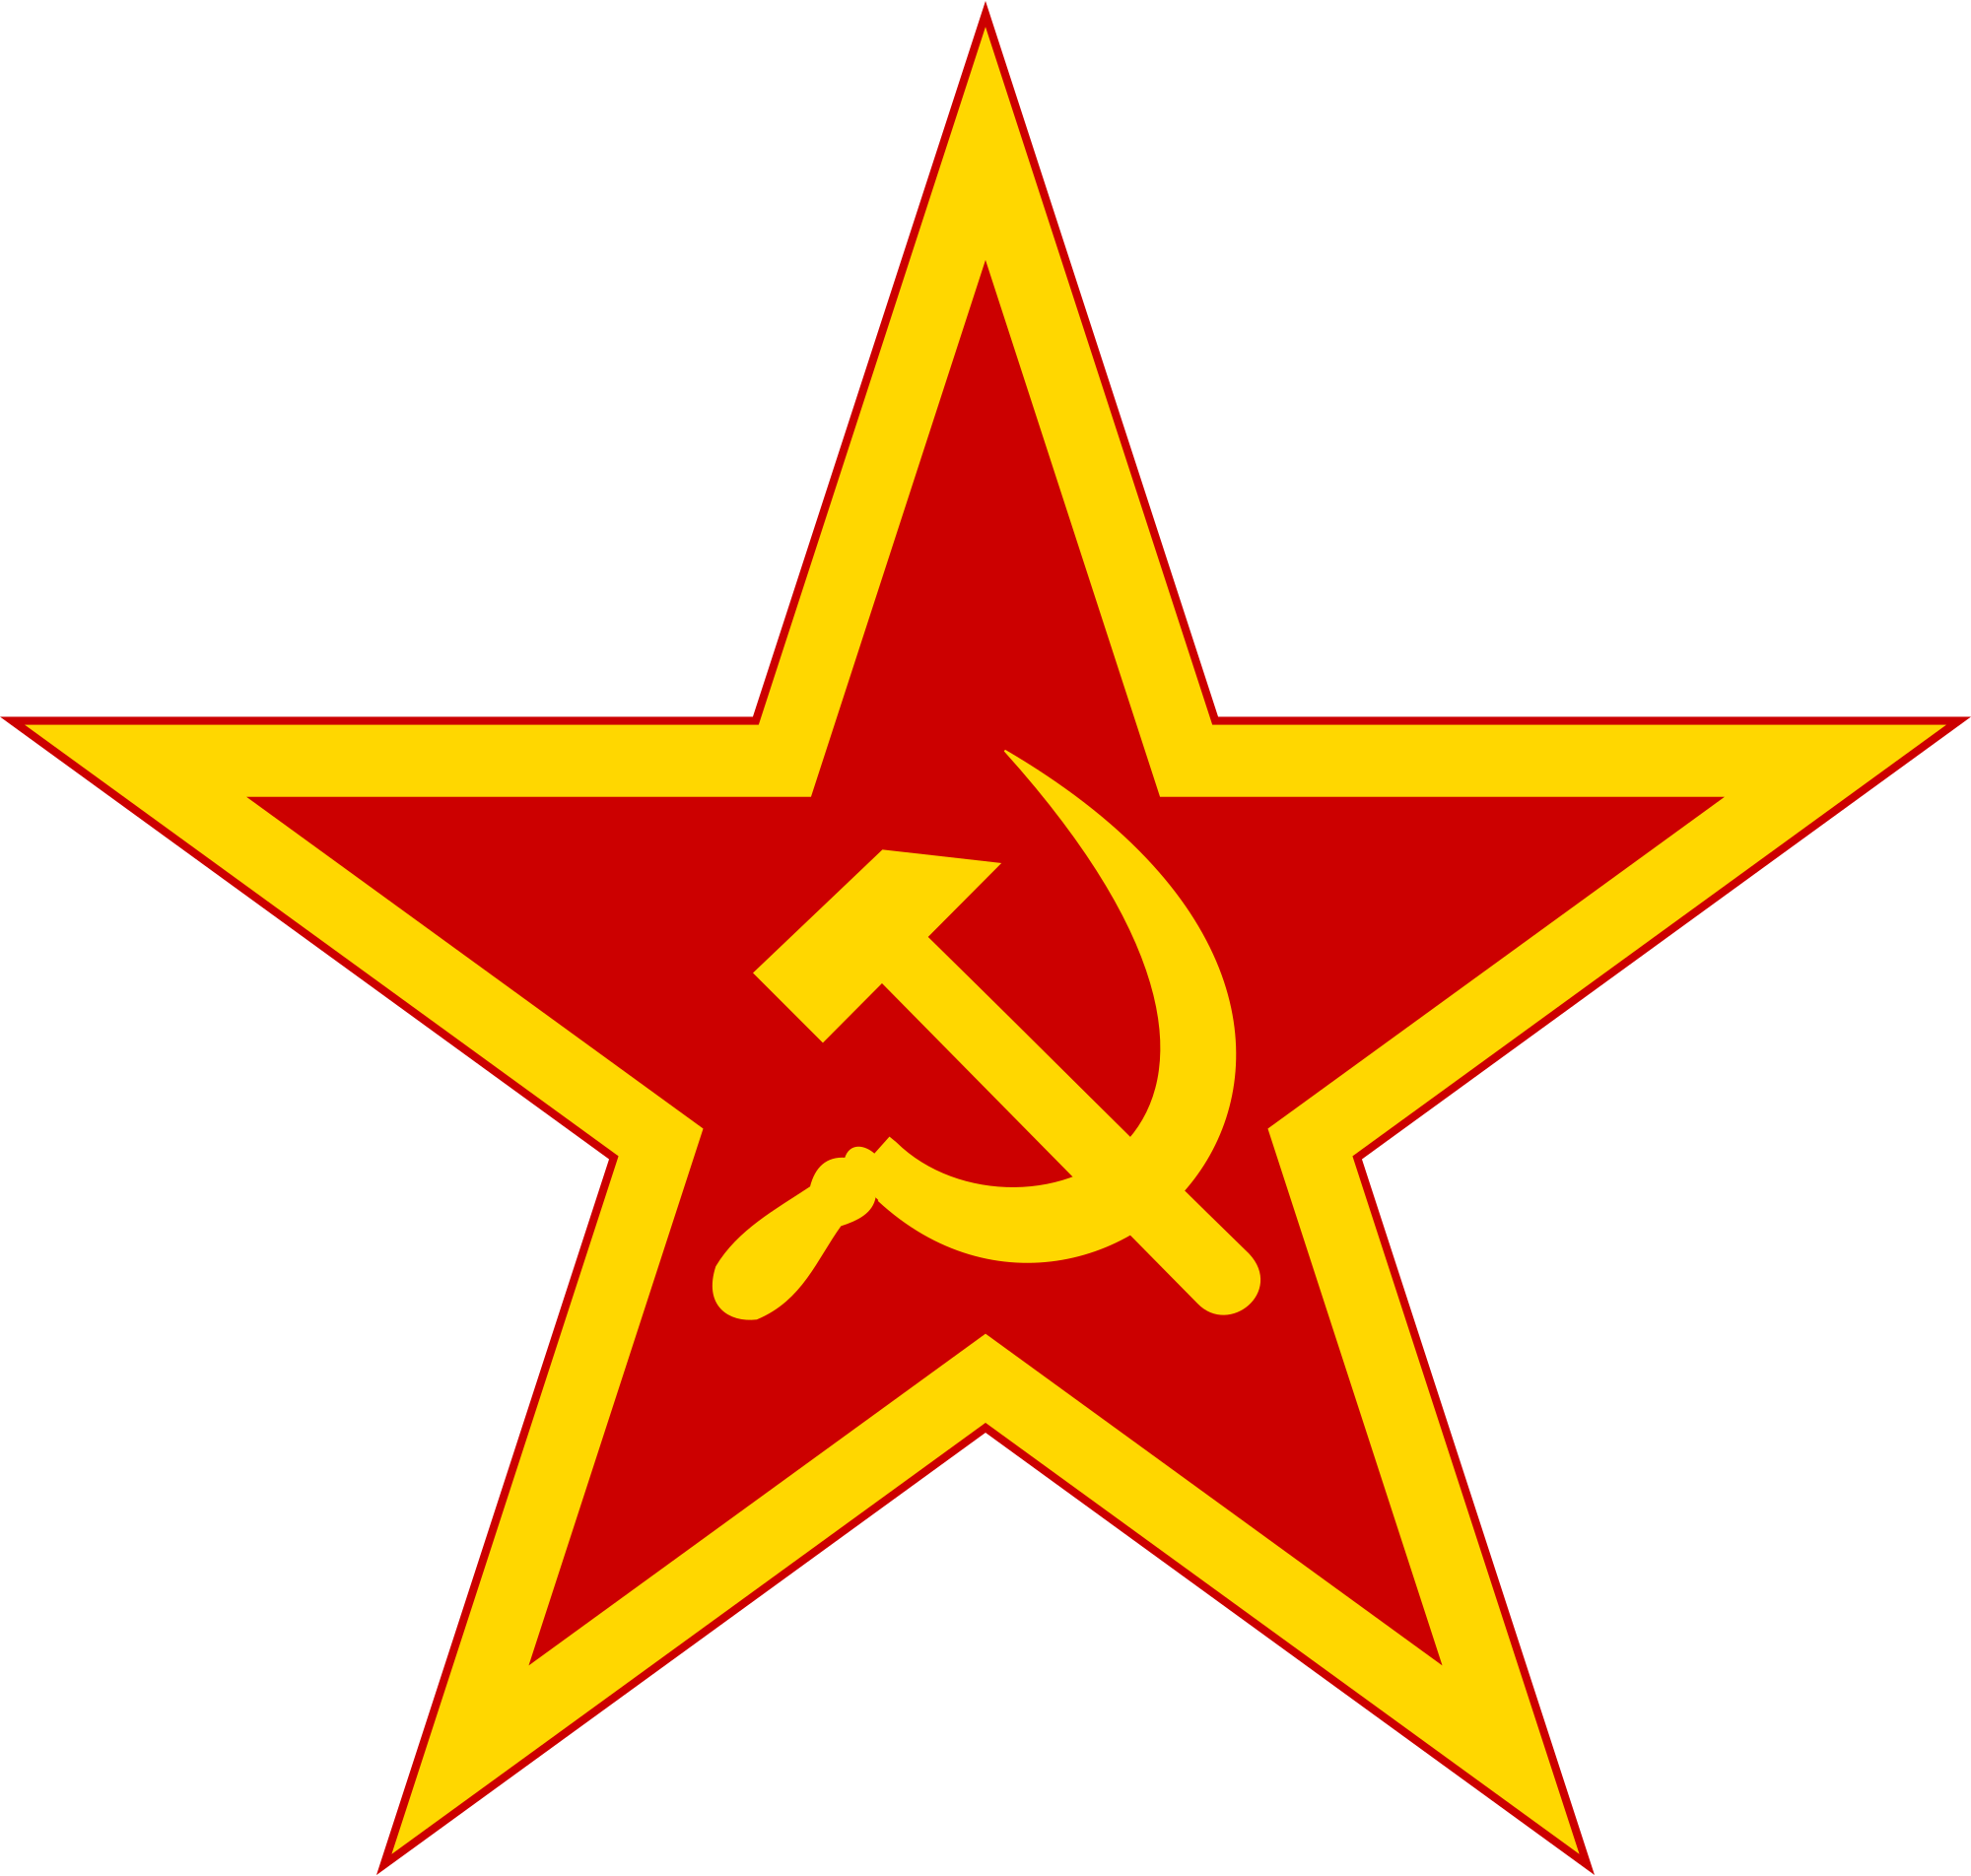 2000x1904 Filecommunist Star With Golden Border And Red Rims.svg